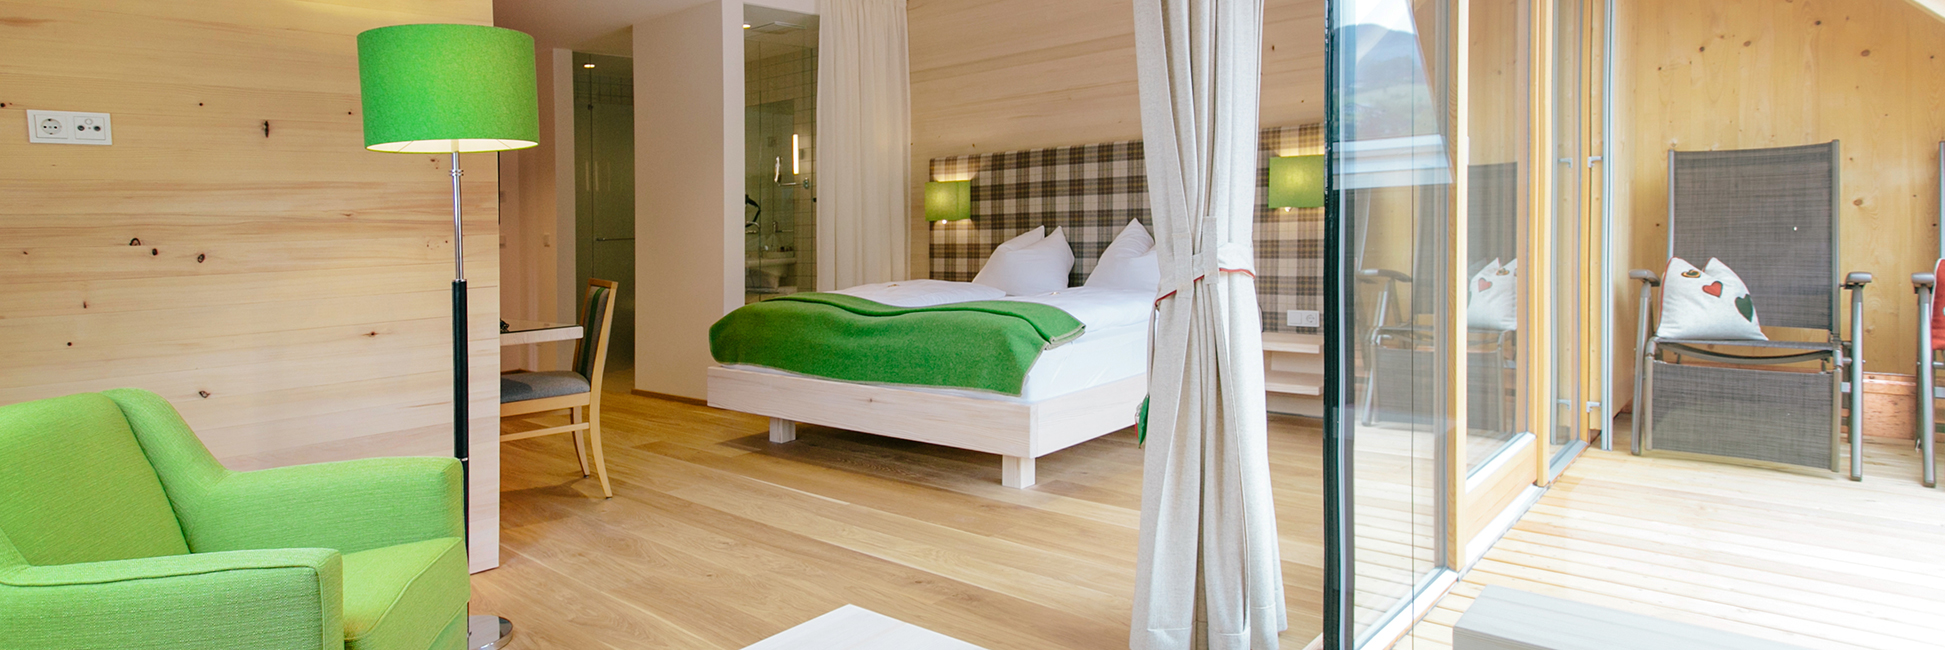 "Double bed in ""Wolfgangsee de luxe"" room type"